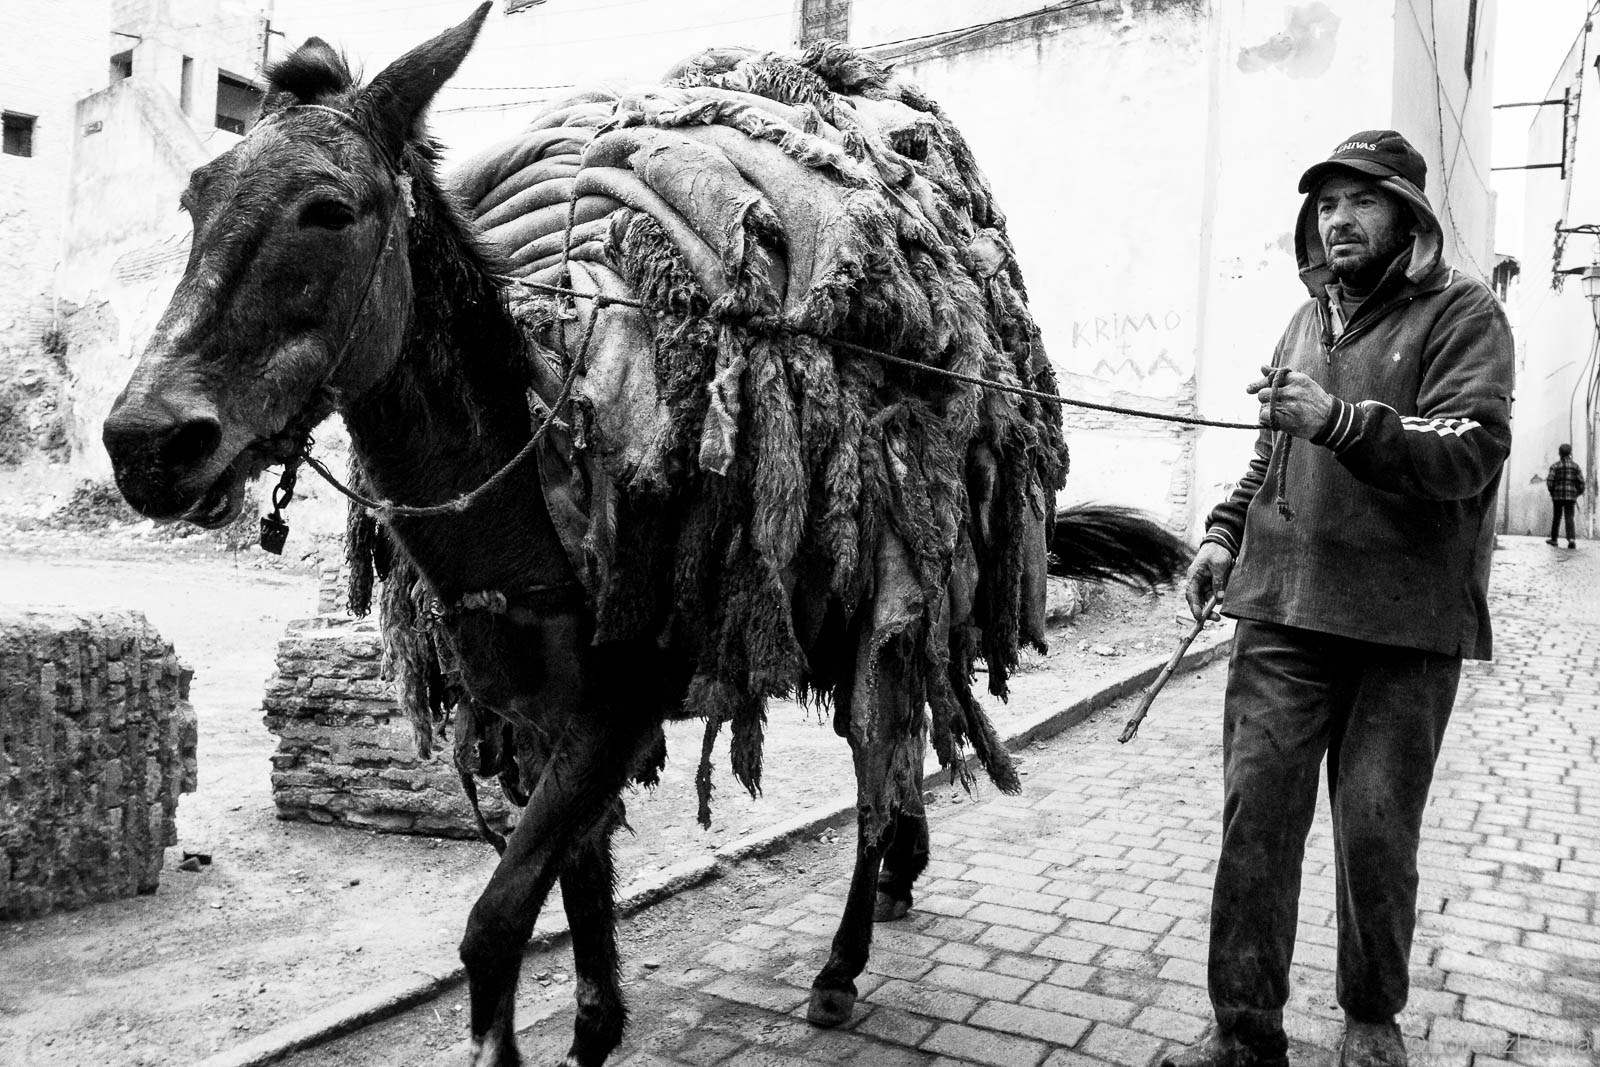 Black and white photography of Morocco : Skins from the Fez tanneries, carried away on a horse back, Morocco Street Photography